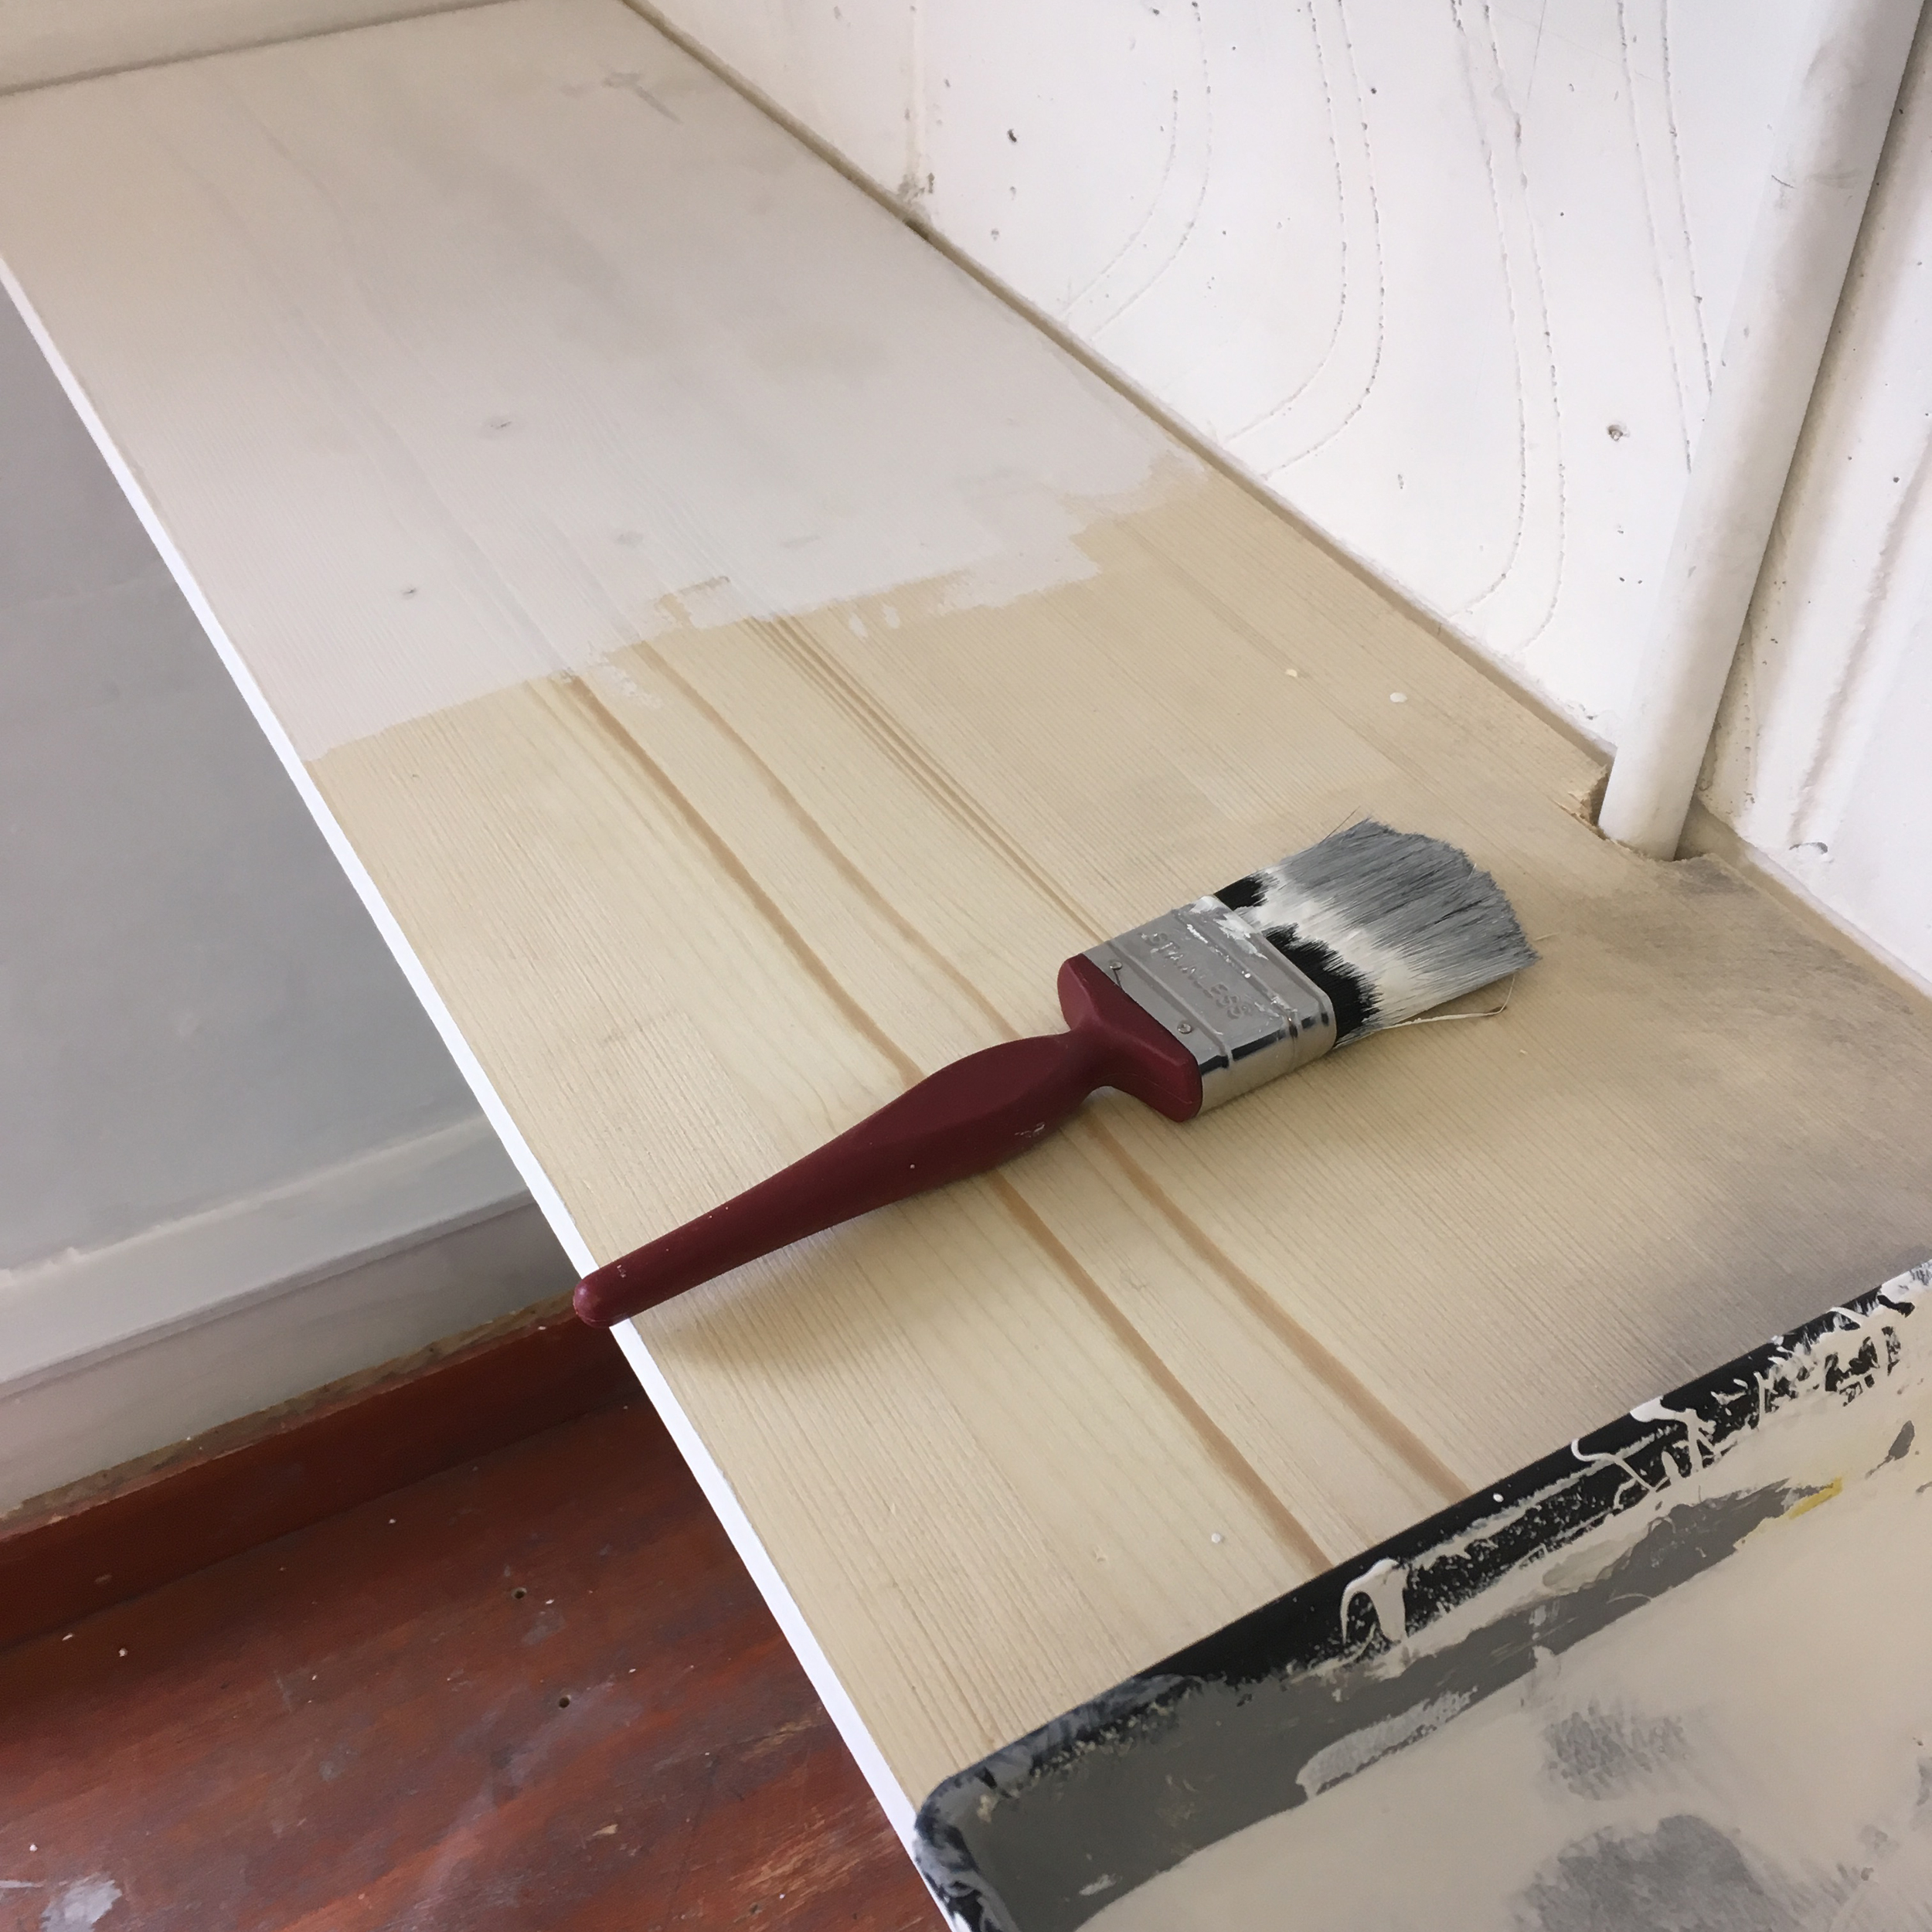 Painting shelves